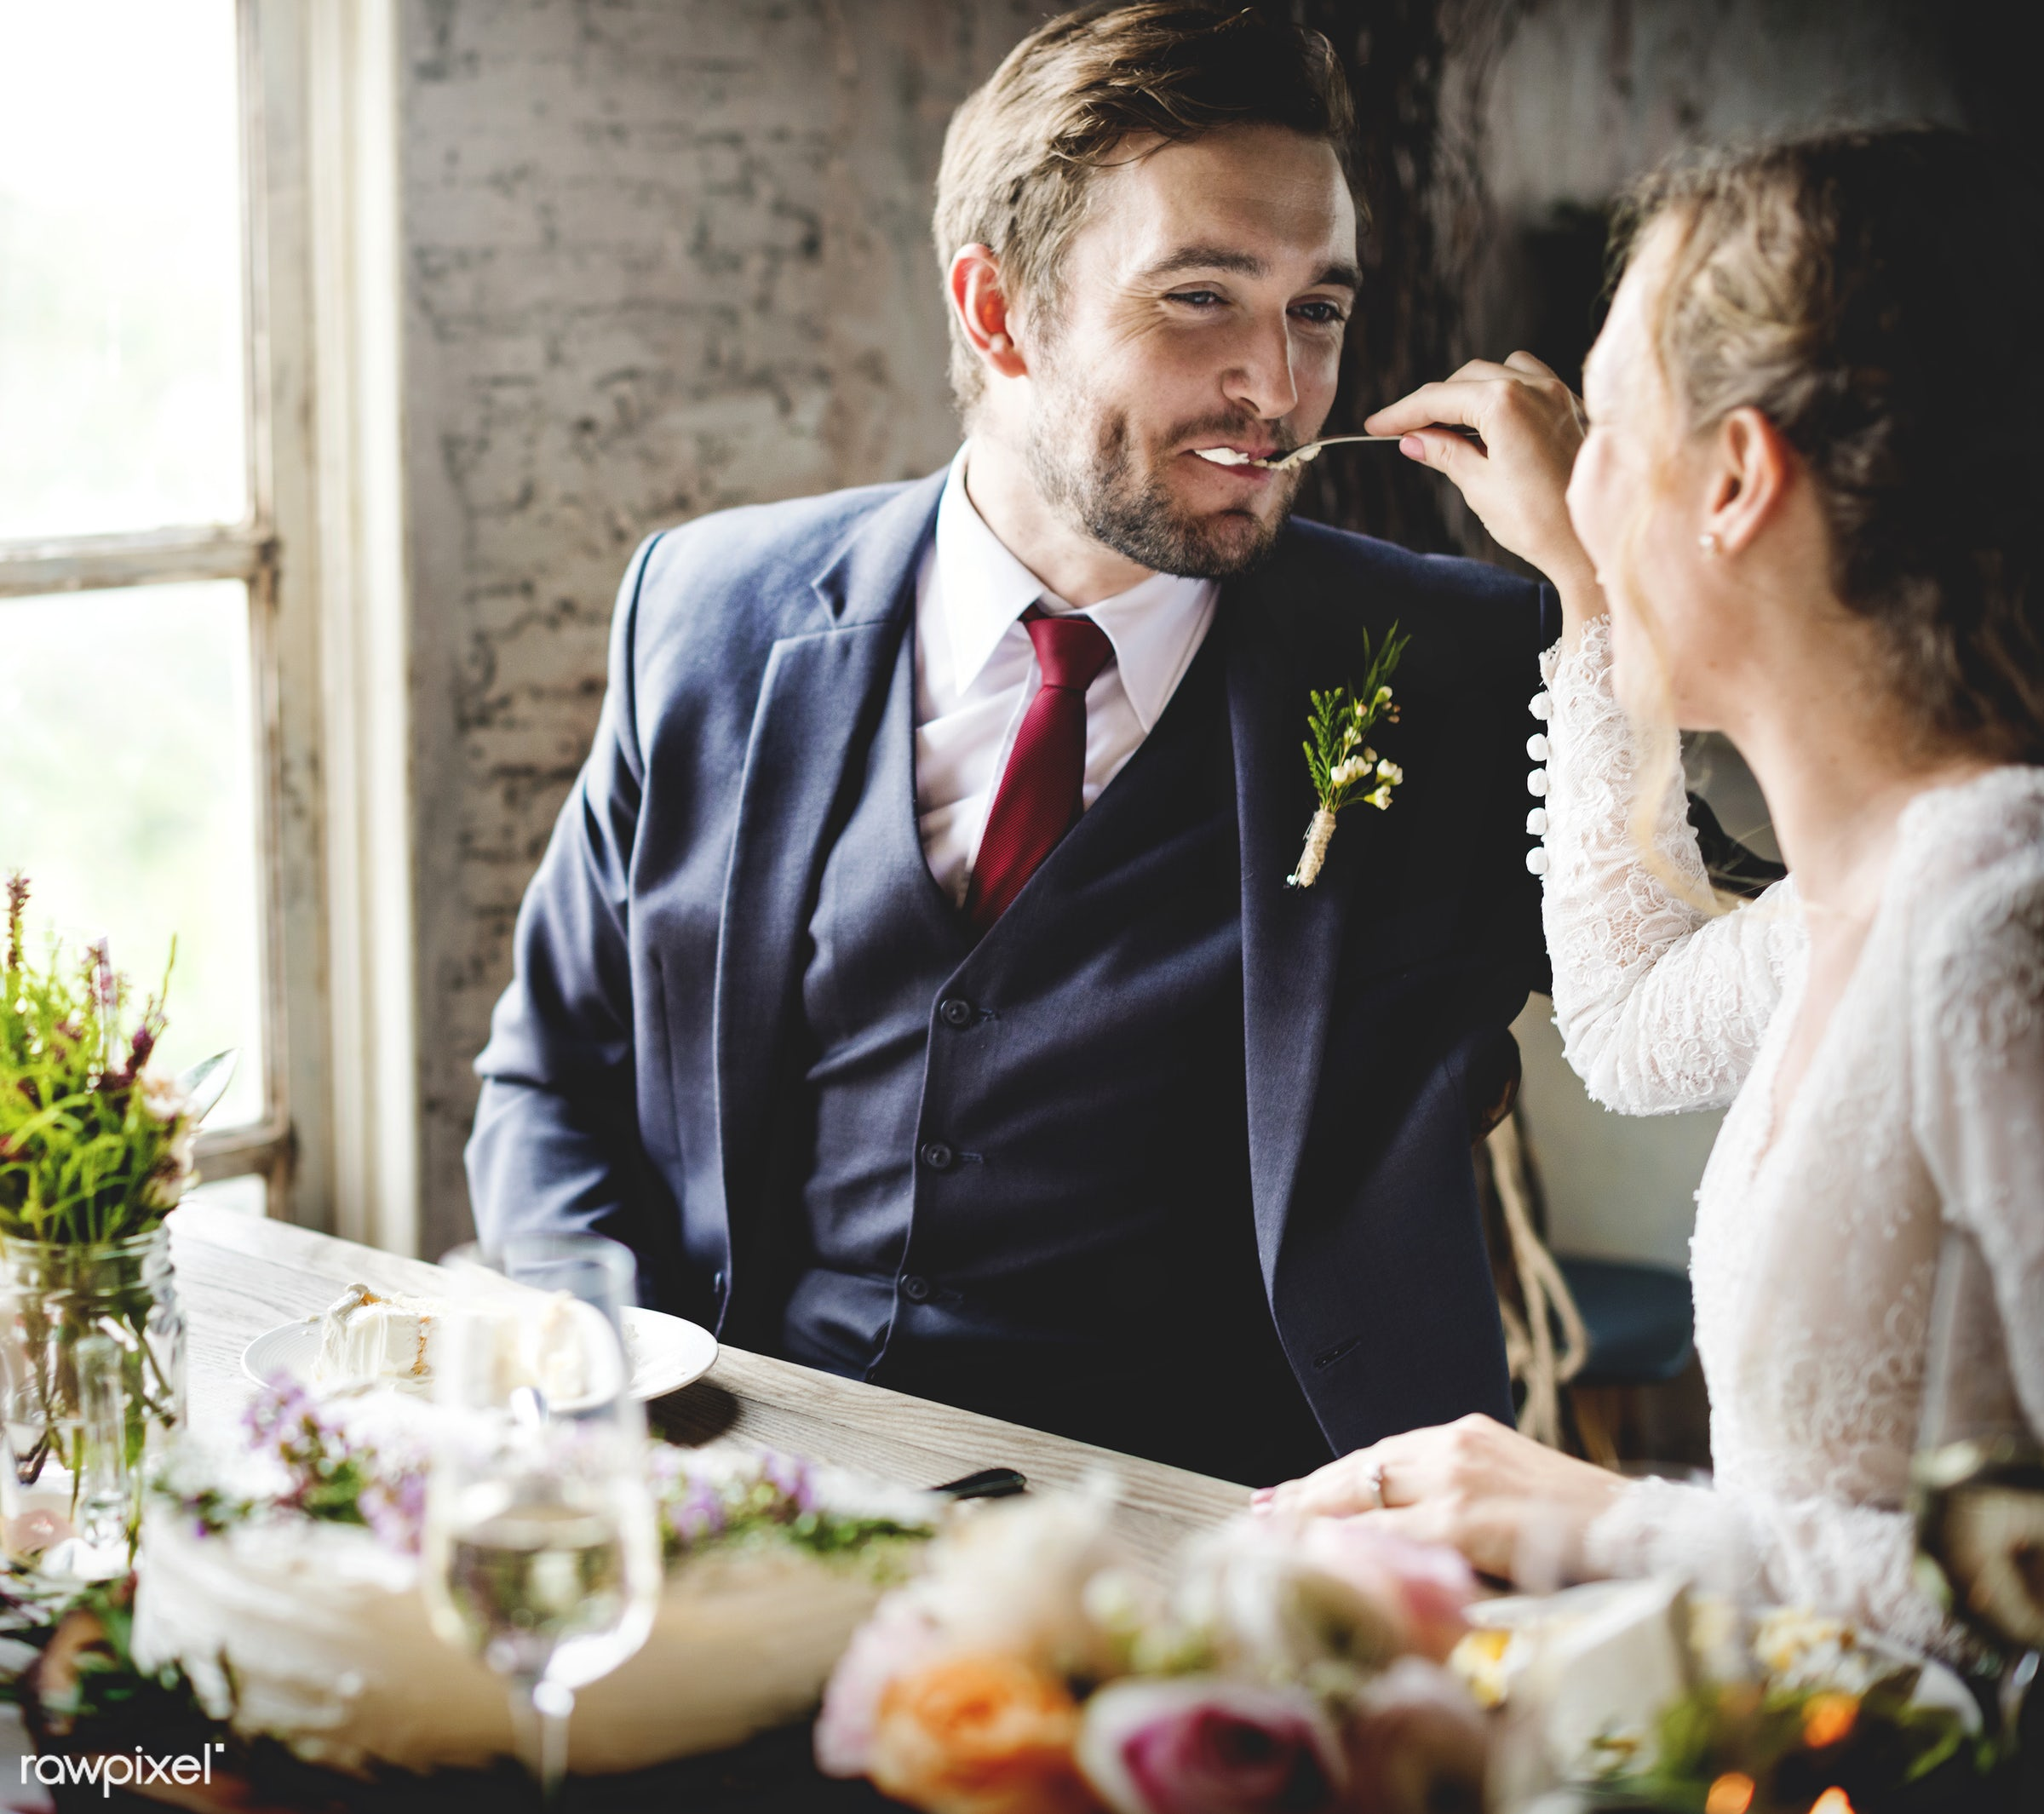 expression, person, people, together, love, married, gather, woman, drink, flowers, wine, cake, happiness, table, clink,...